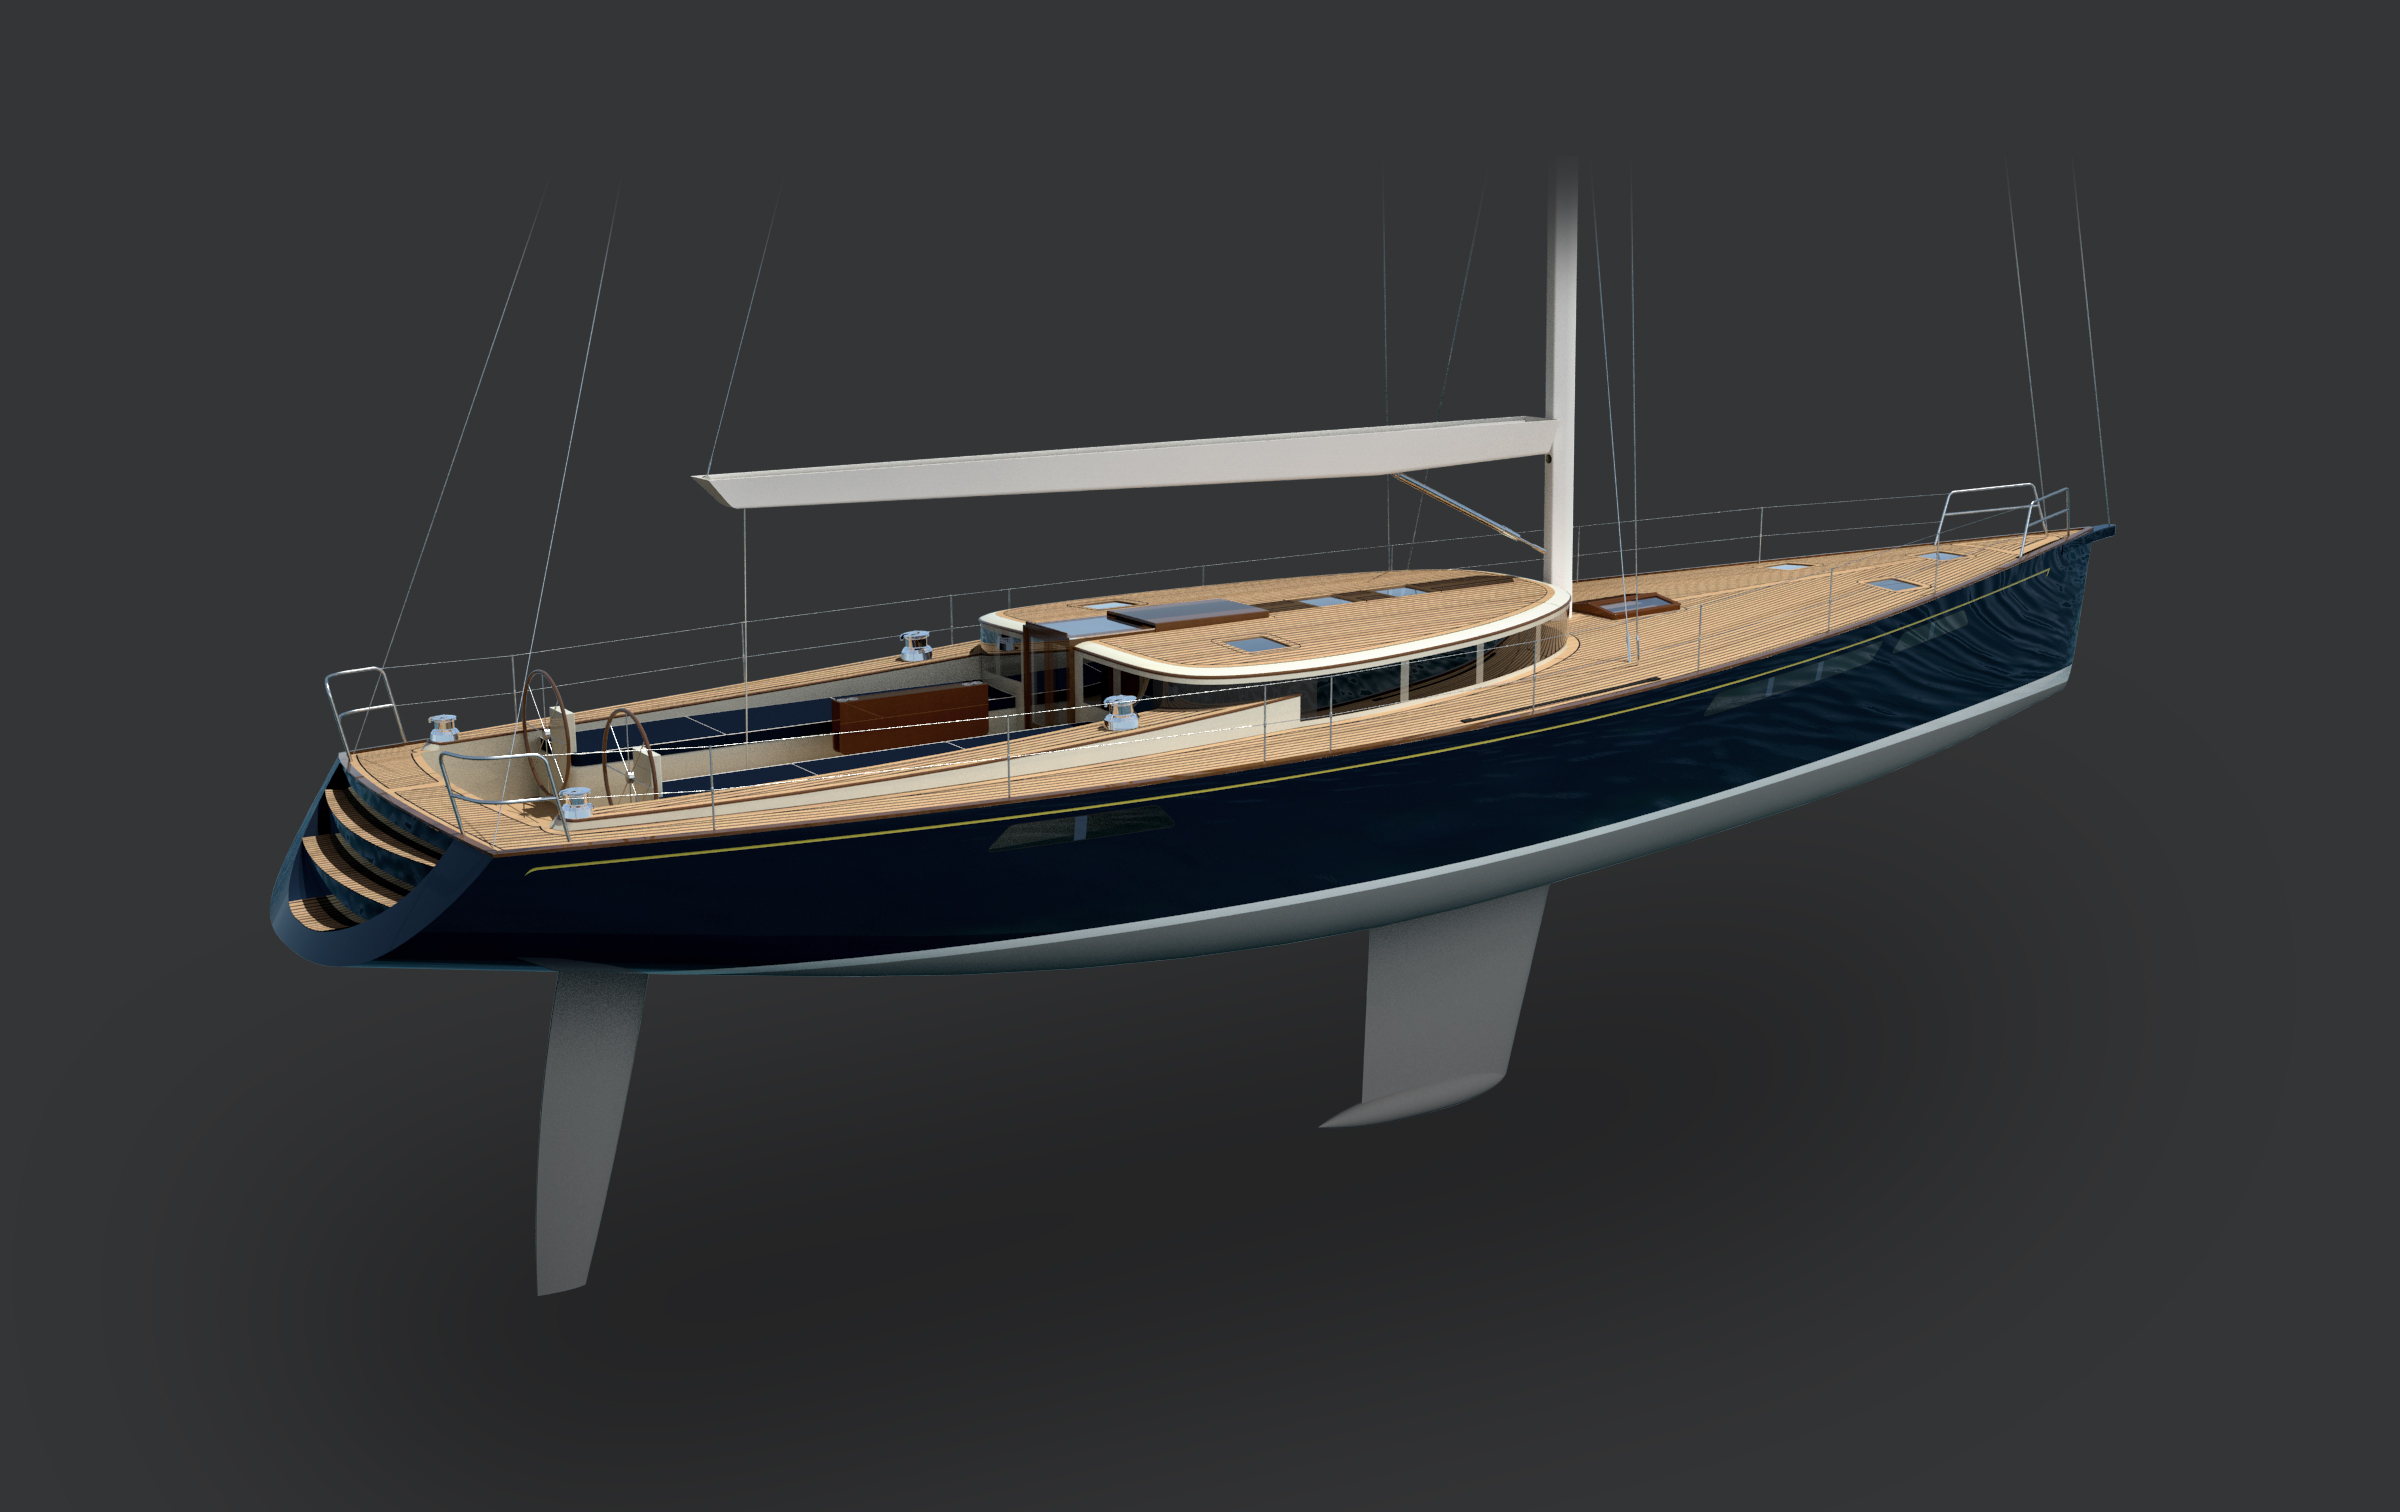 DAF Renderings - 70' Sailboat